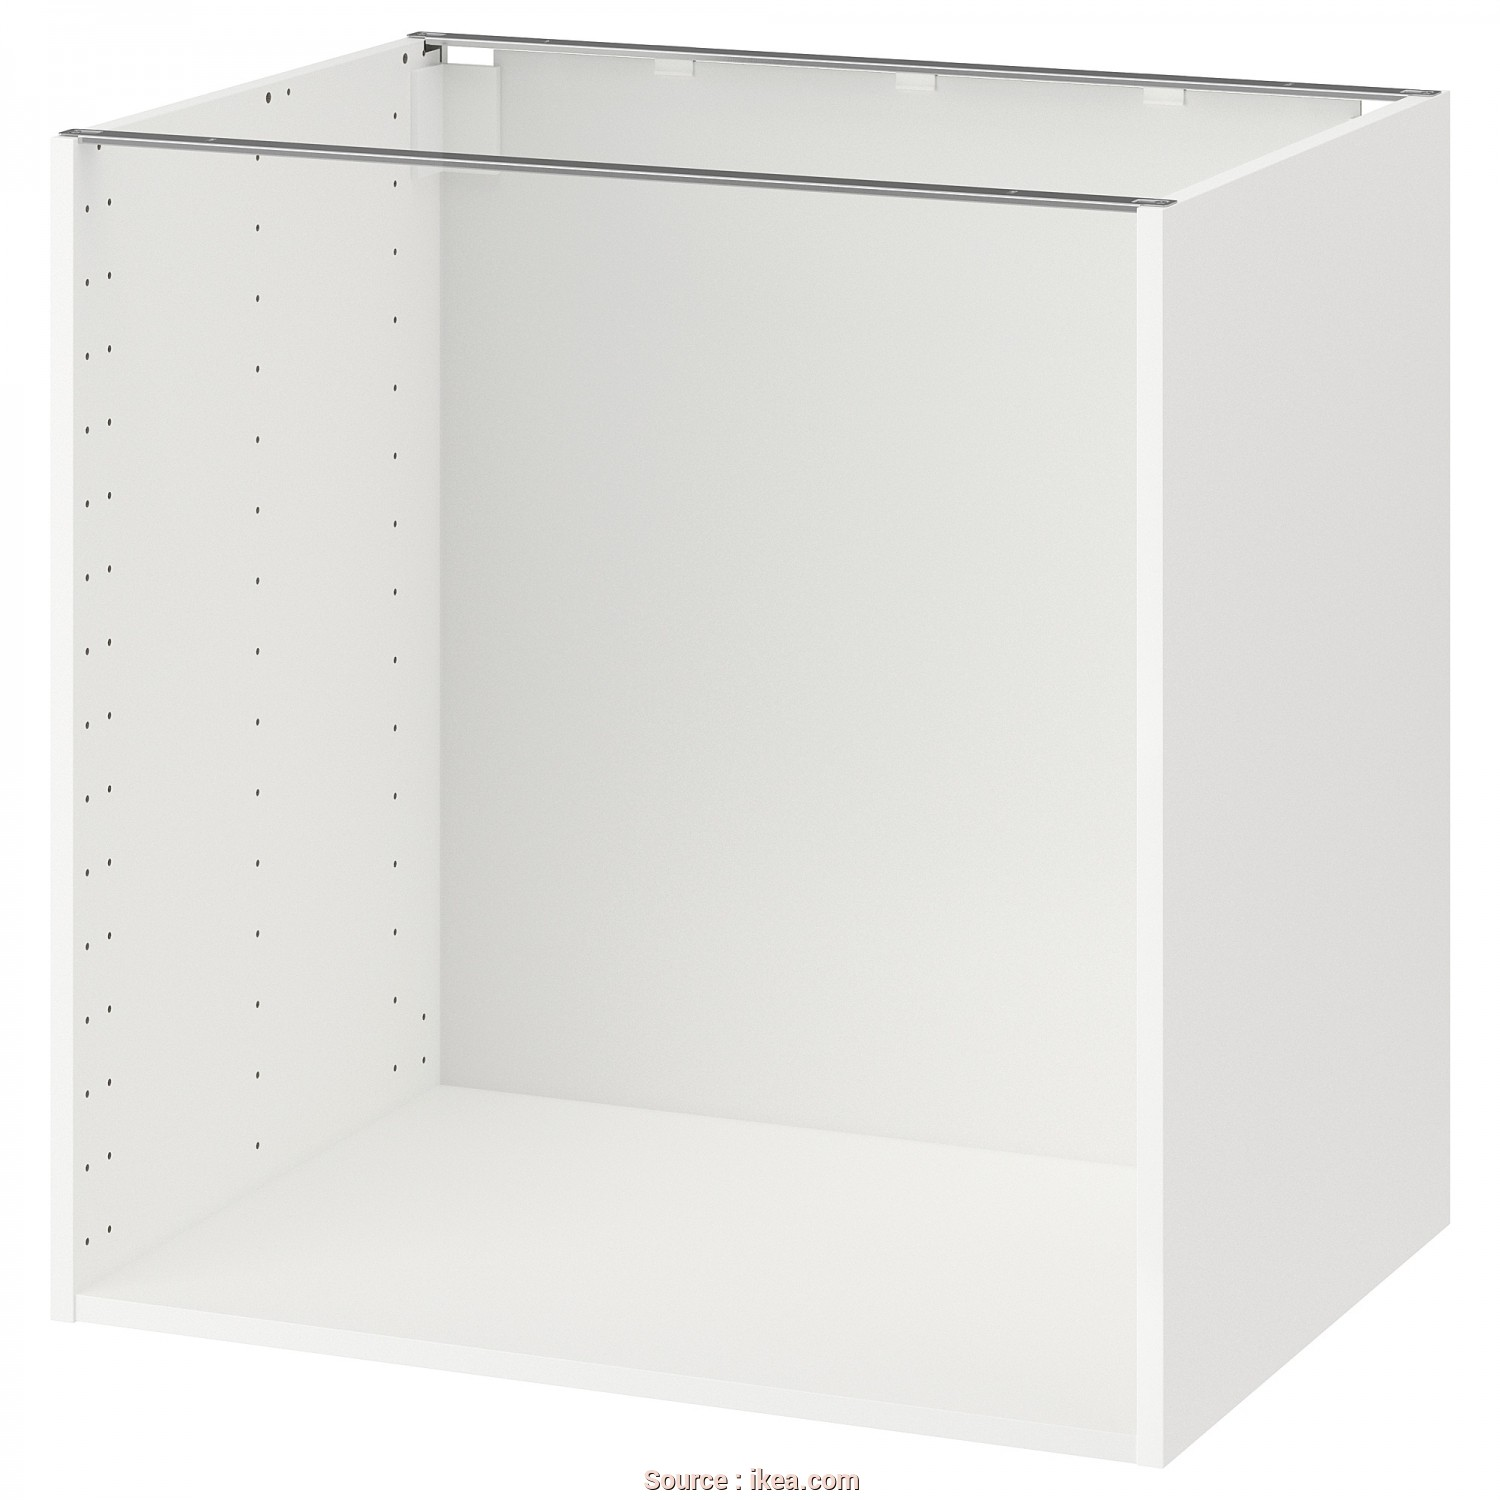 Copricuscini 60X60 Ikea, Bellissimo IKEA METOD Base Cabinet Frame Sturdy Frame Construction, 18 Mm Thick